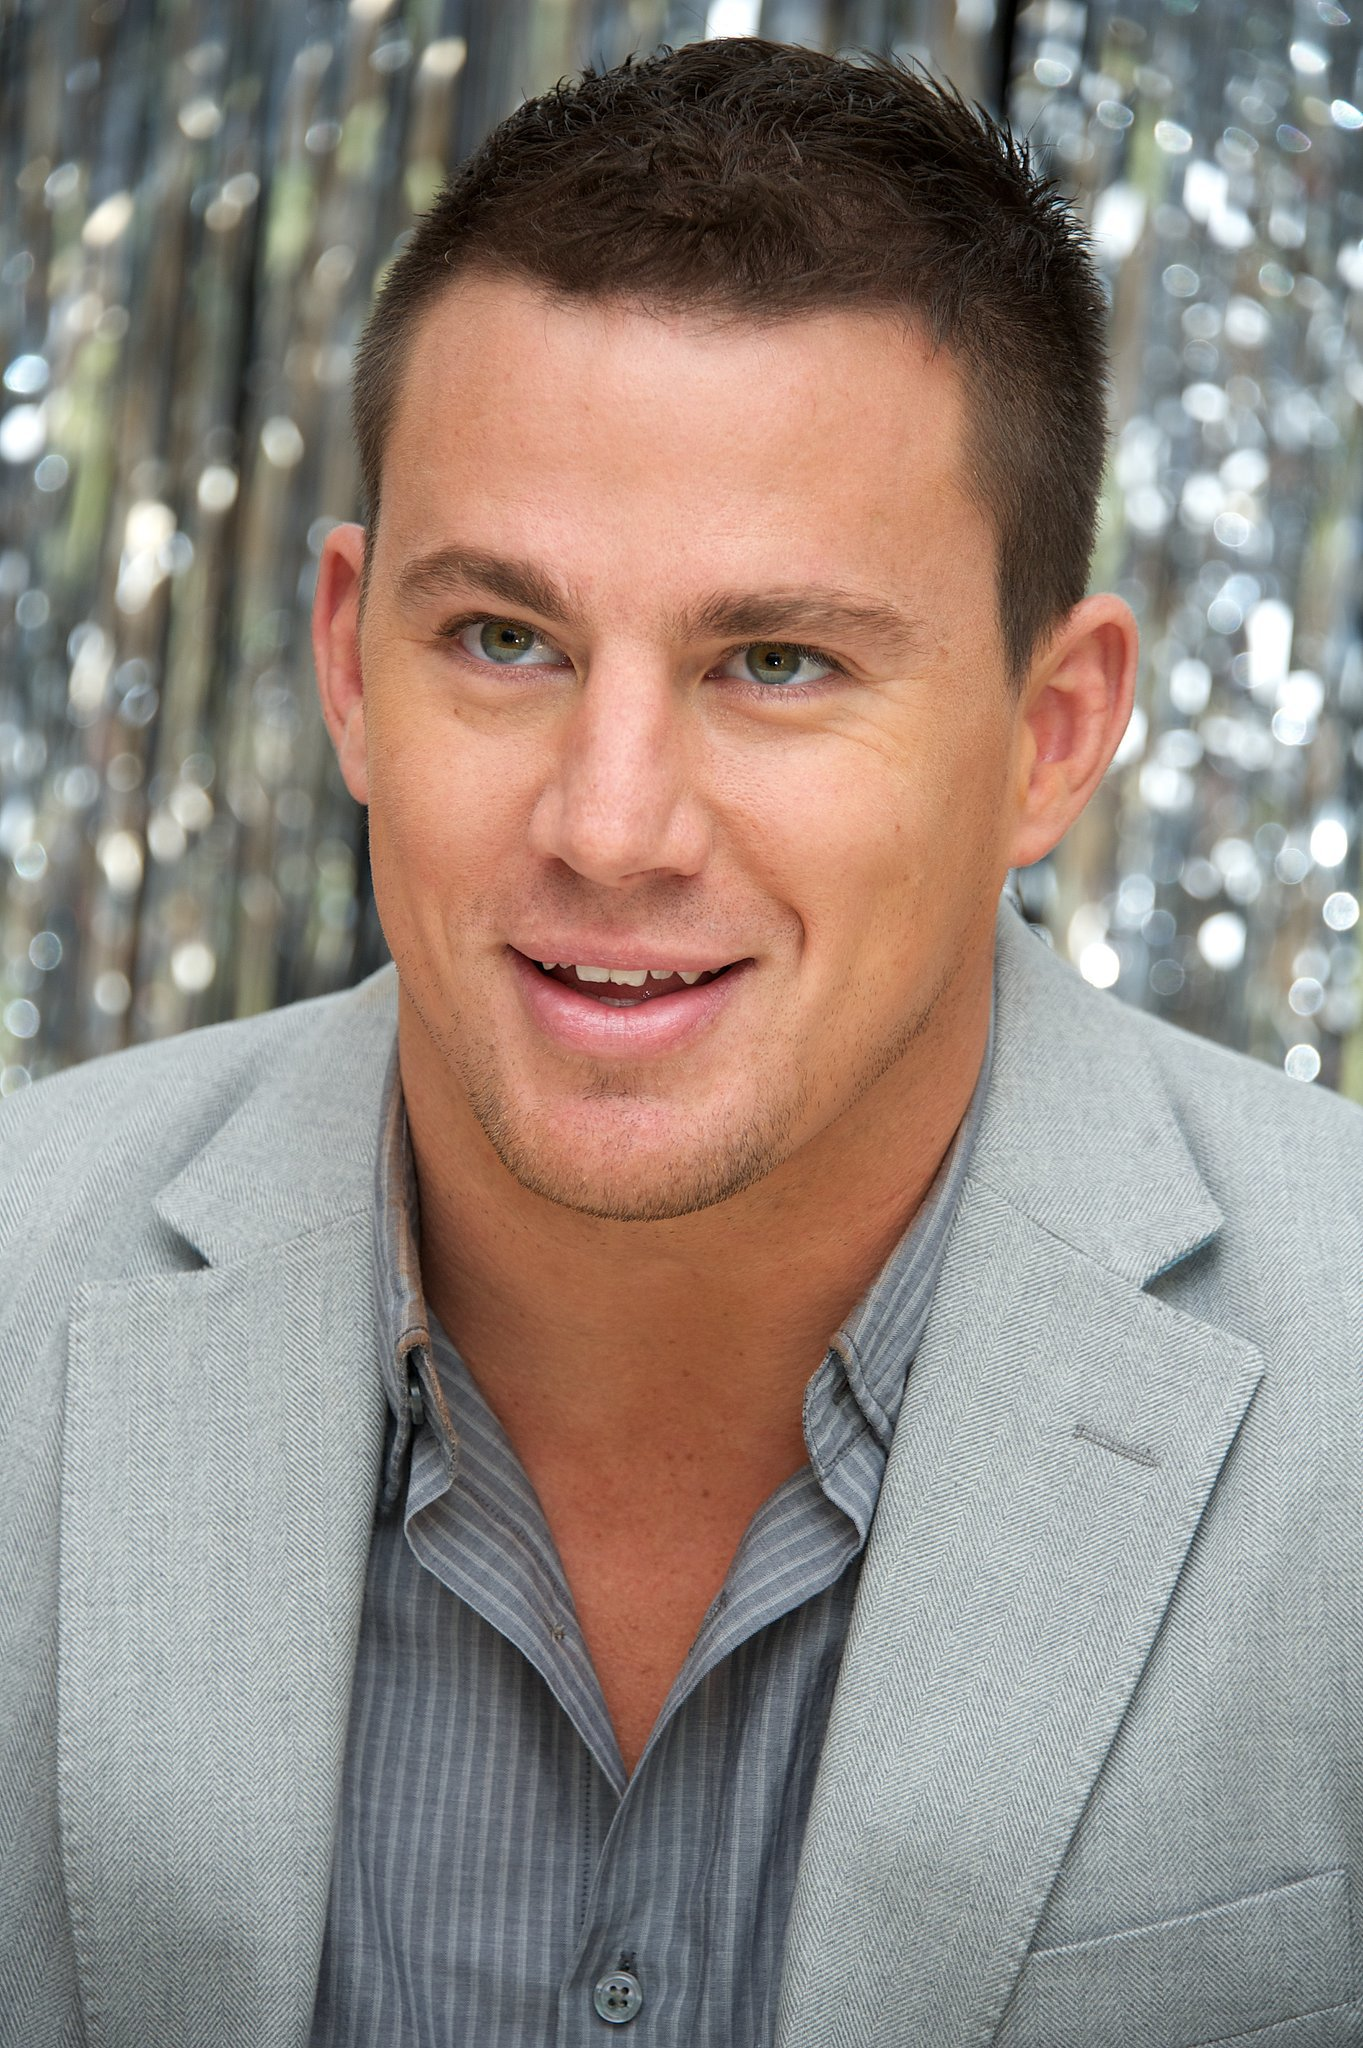 Channing's eyes were front and center during an appearance in June 2012 in LA.